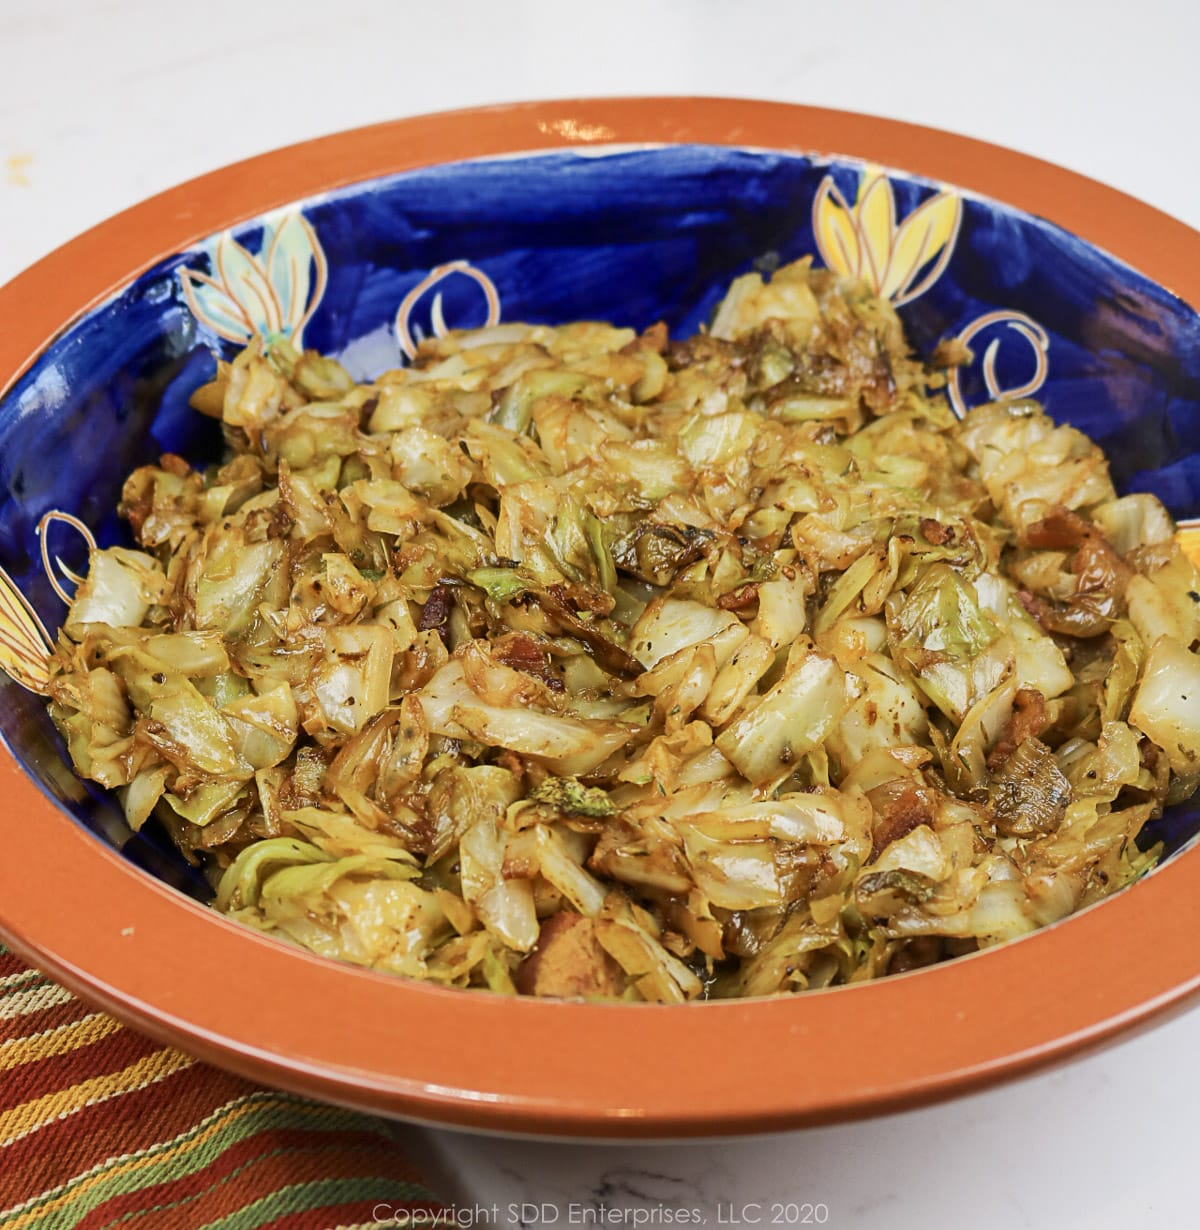 fried cabbage with cane syrup in a decorative bowl